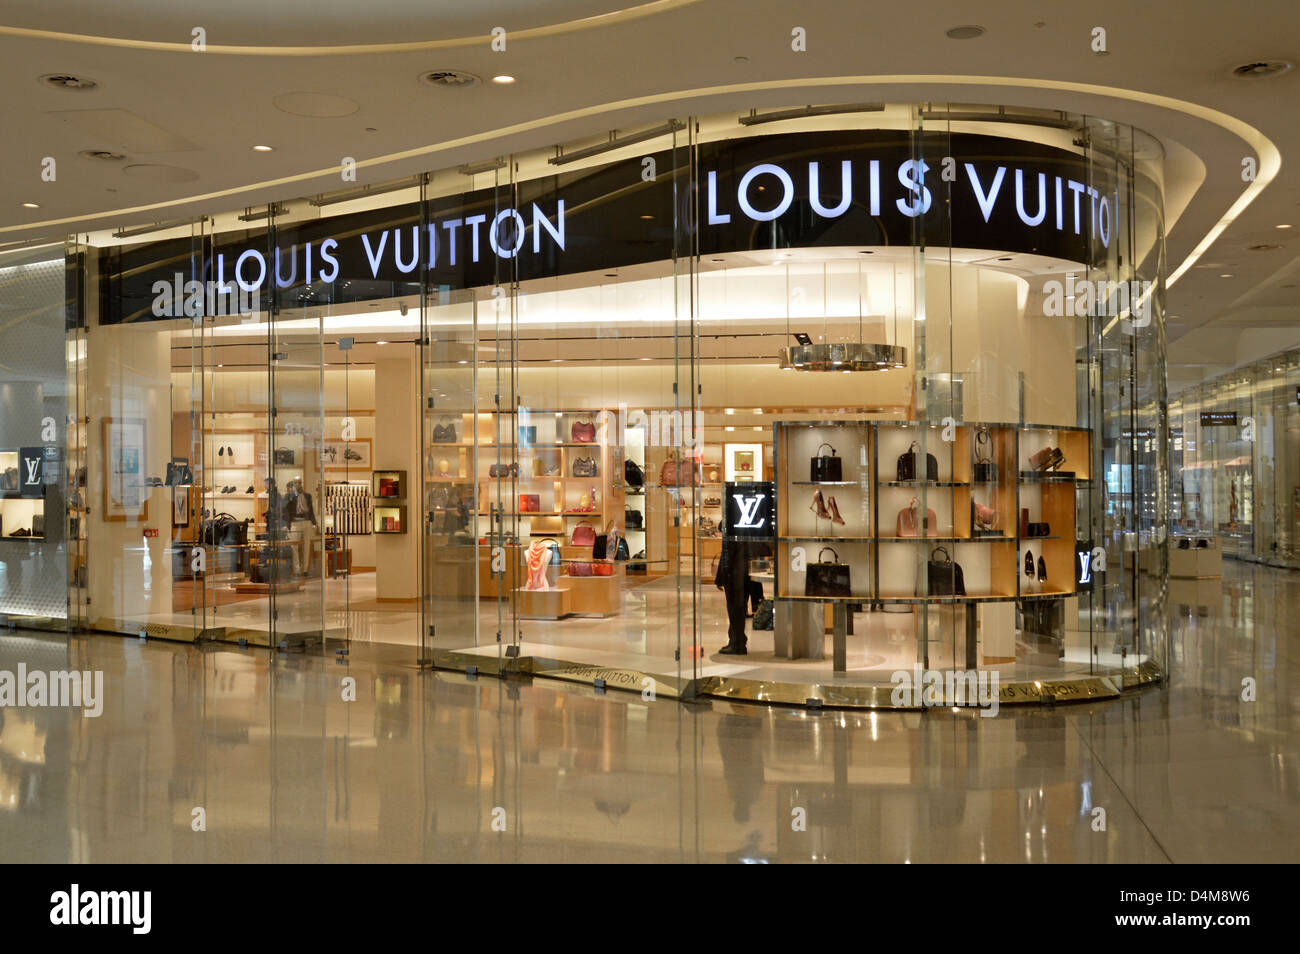 Louis vuitton handbag store window shop front display in for Jewelry show chicago 2018